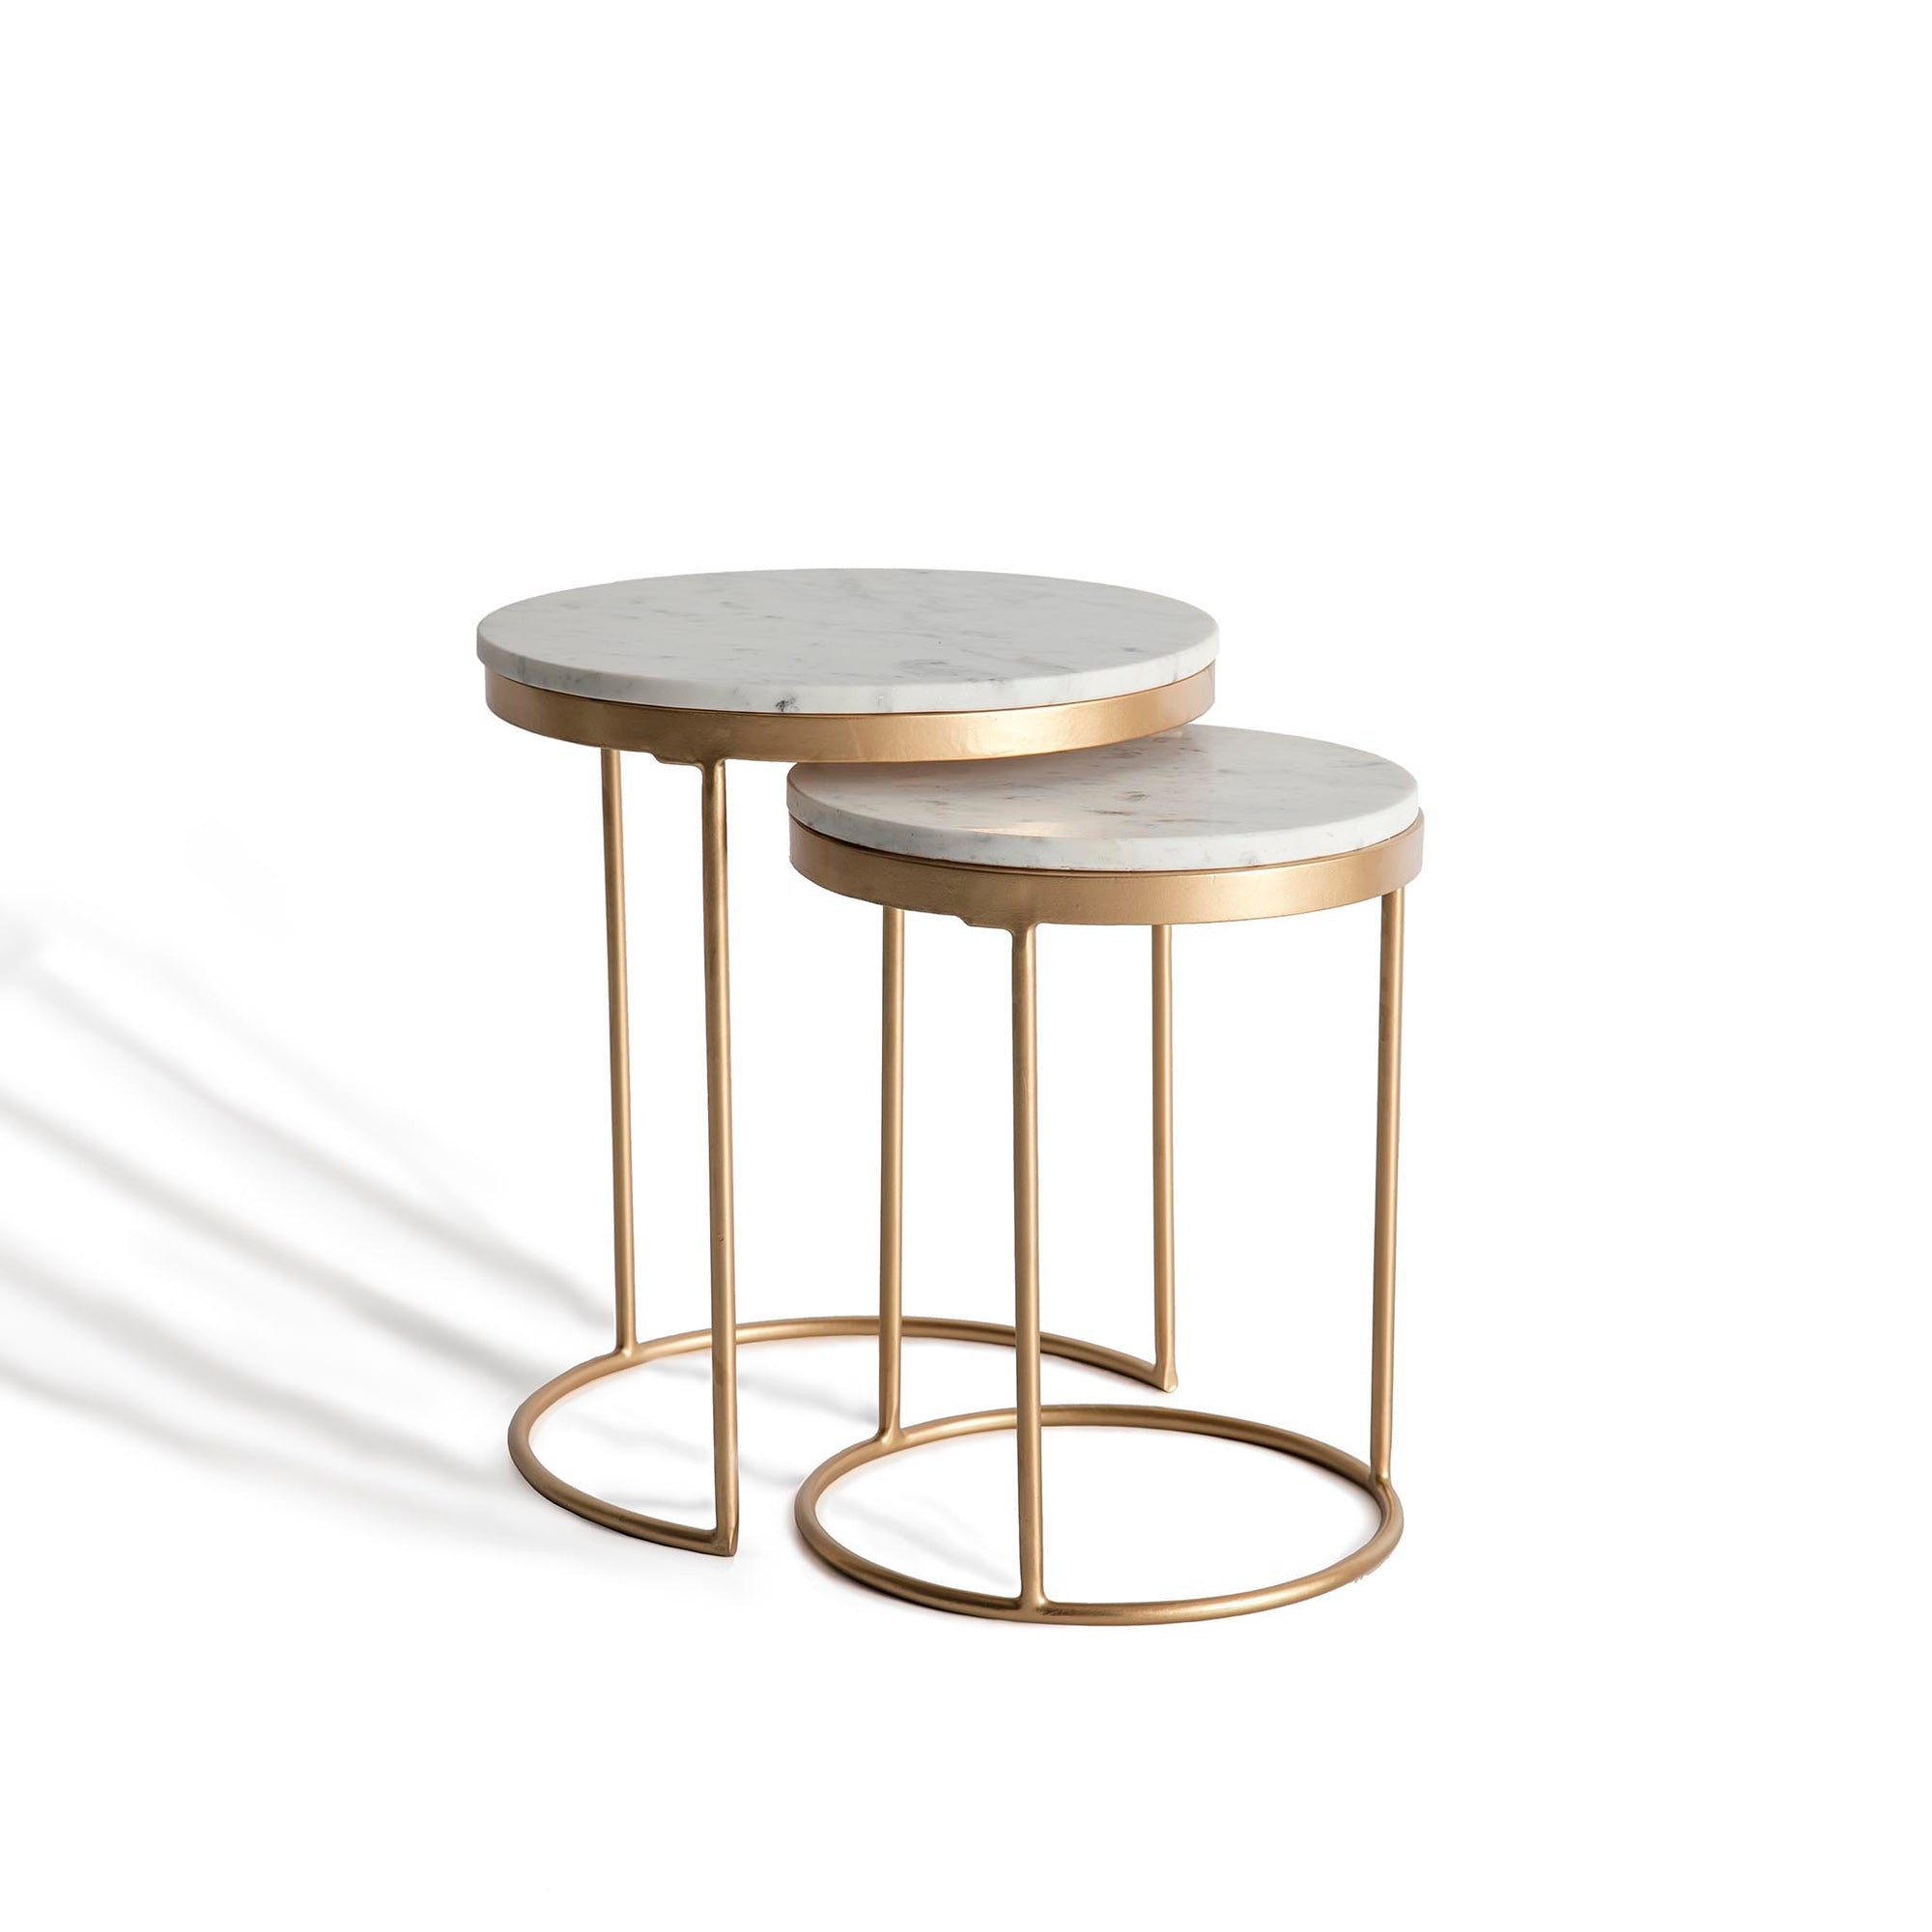 Kandla White Marble Round Nest of Tables with Gold Base by Roseland Furniture